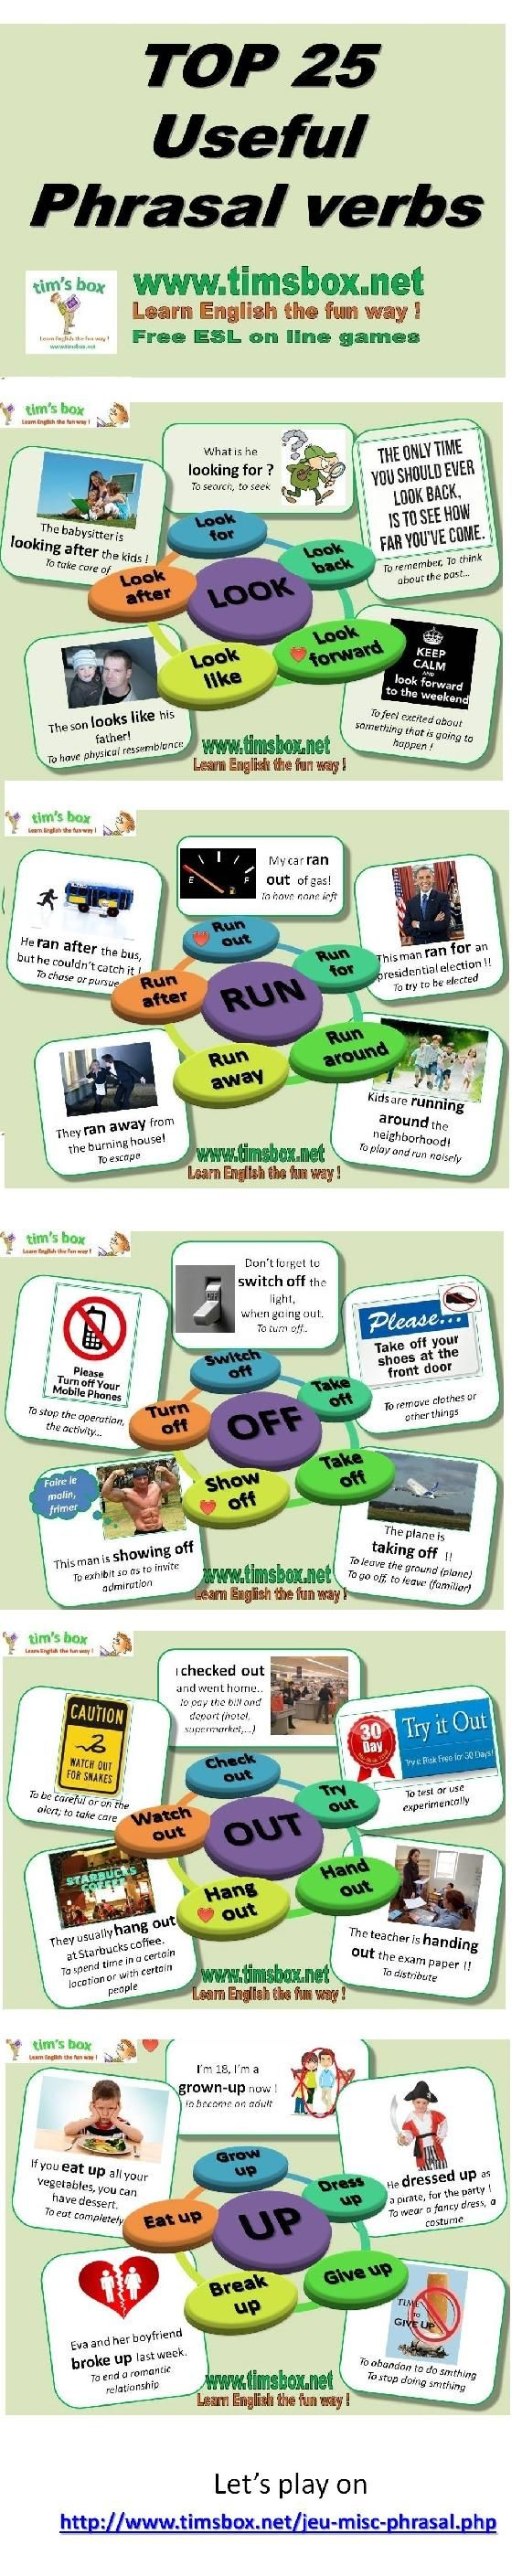 Top Useful Phrasal Verbs in English